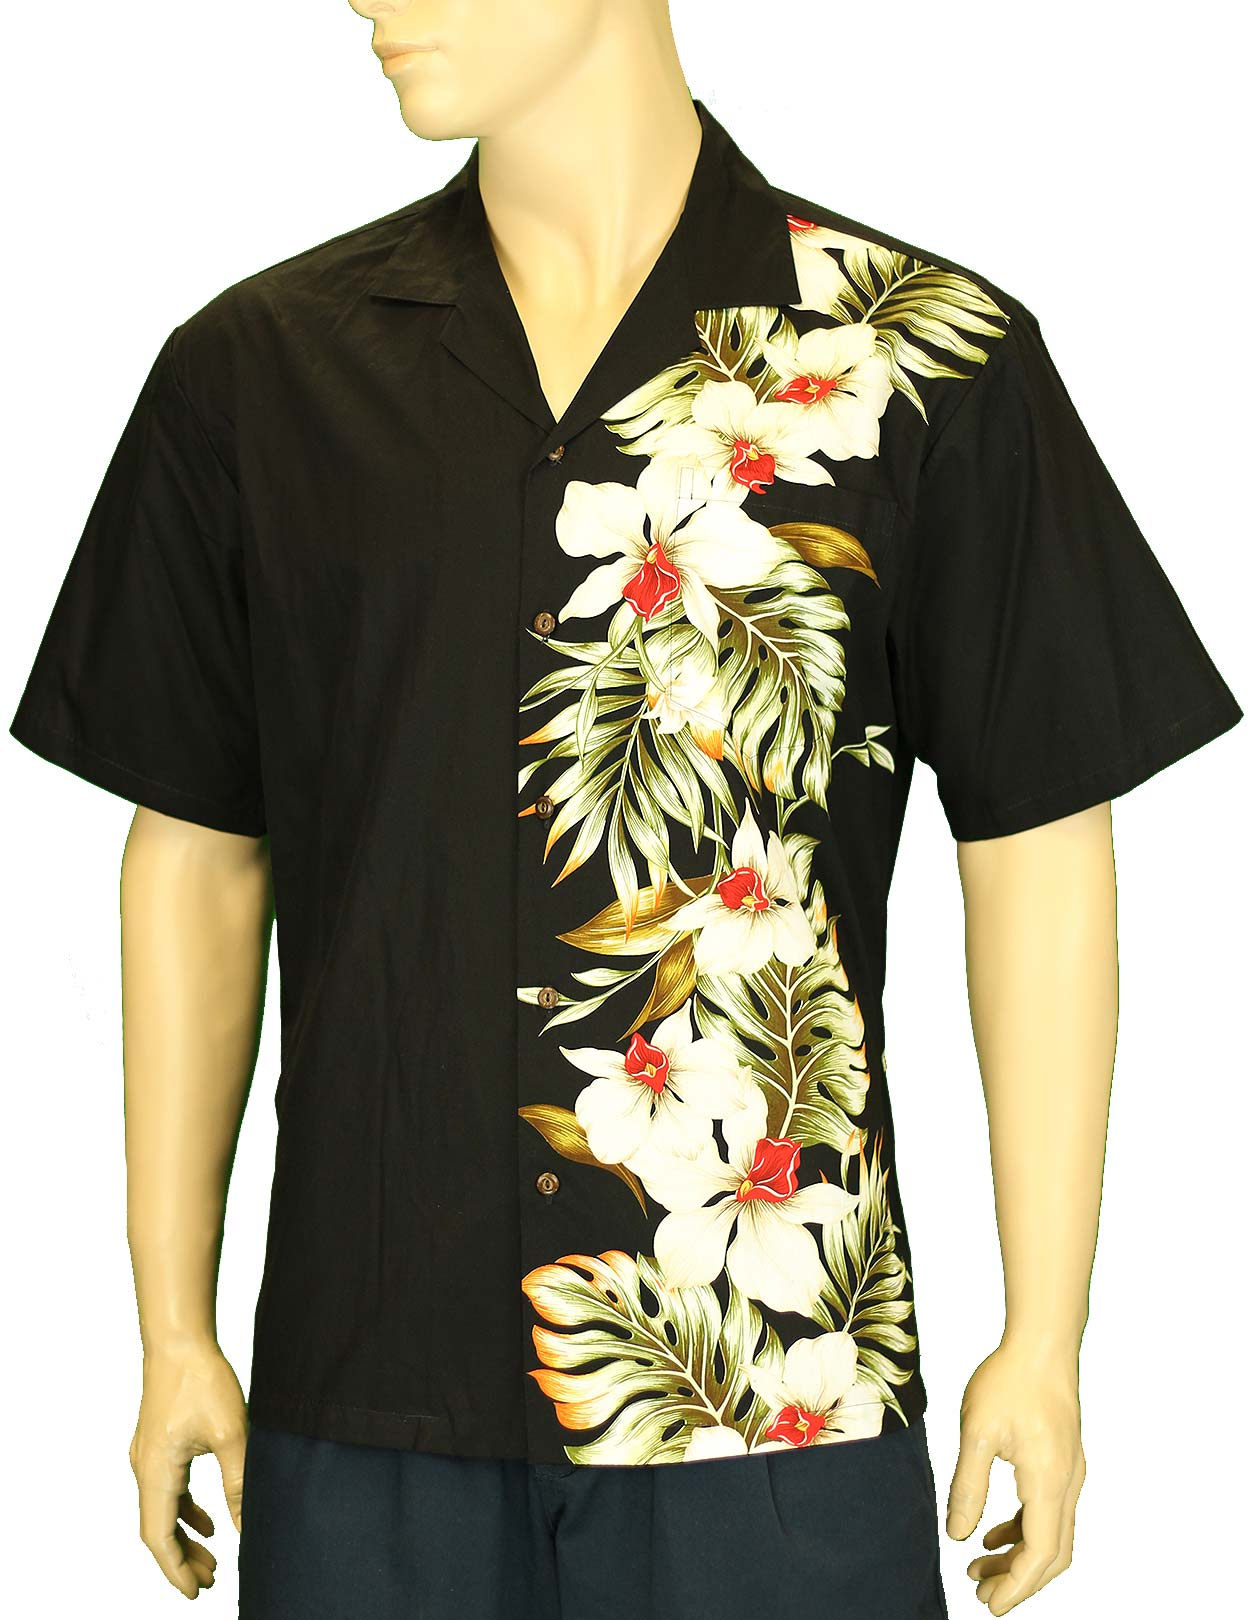 You searched for: black hawaiian shirt! Etsy is the home to thousands of handmade, vintage, and one-of-a-kind products and gifts related to your search. No matter what you're looking for or where you are in the world, our global marketplace of sellers can help you find unique and affordable options. Let's get started!